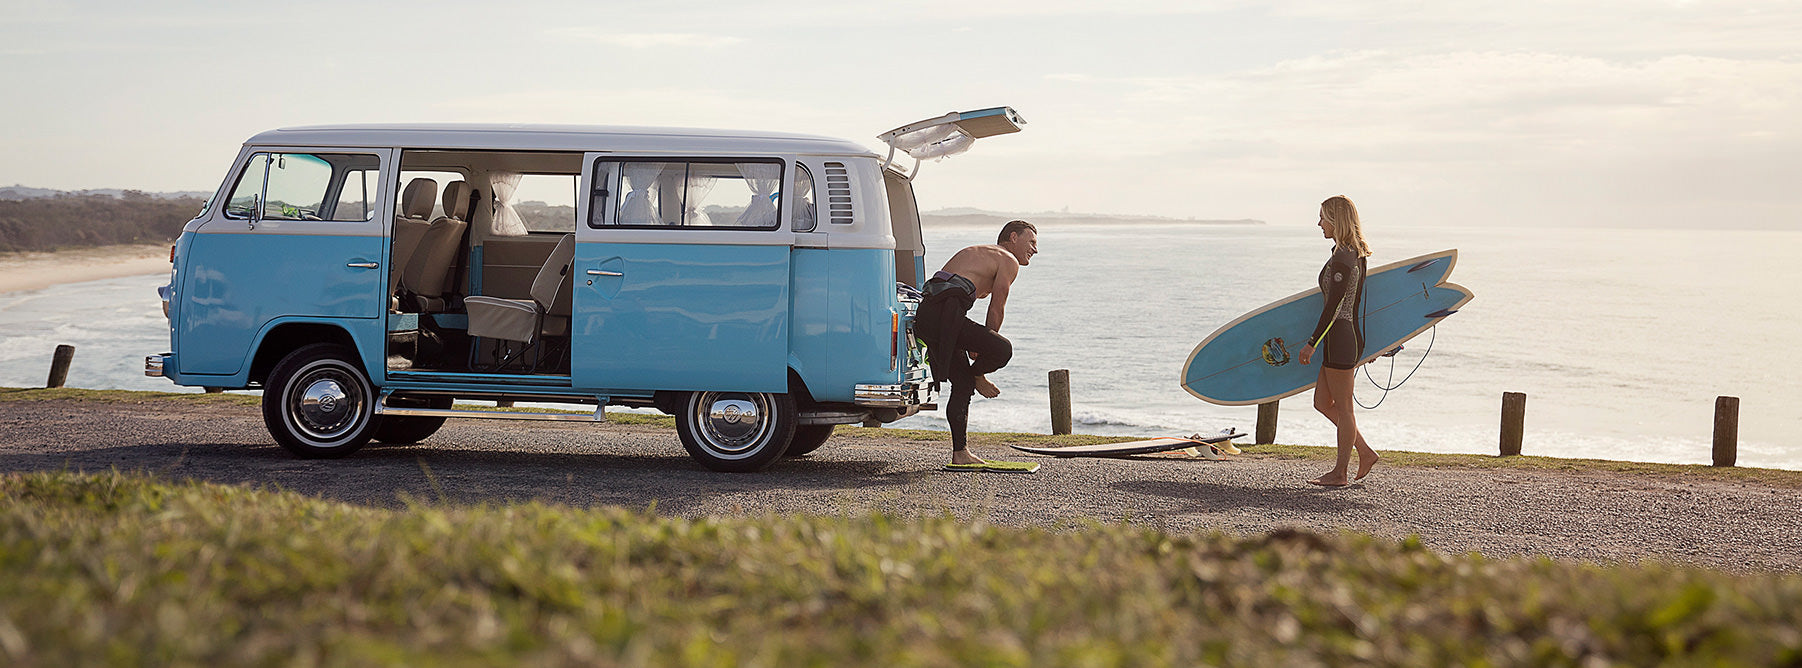 Young couple coming in from a surf wearing wetsuits and carrying surfboards, using their new grass mat online purchase to clean their feet before hopping in their blue Kombi Van.